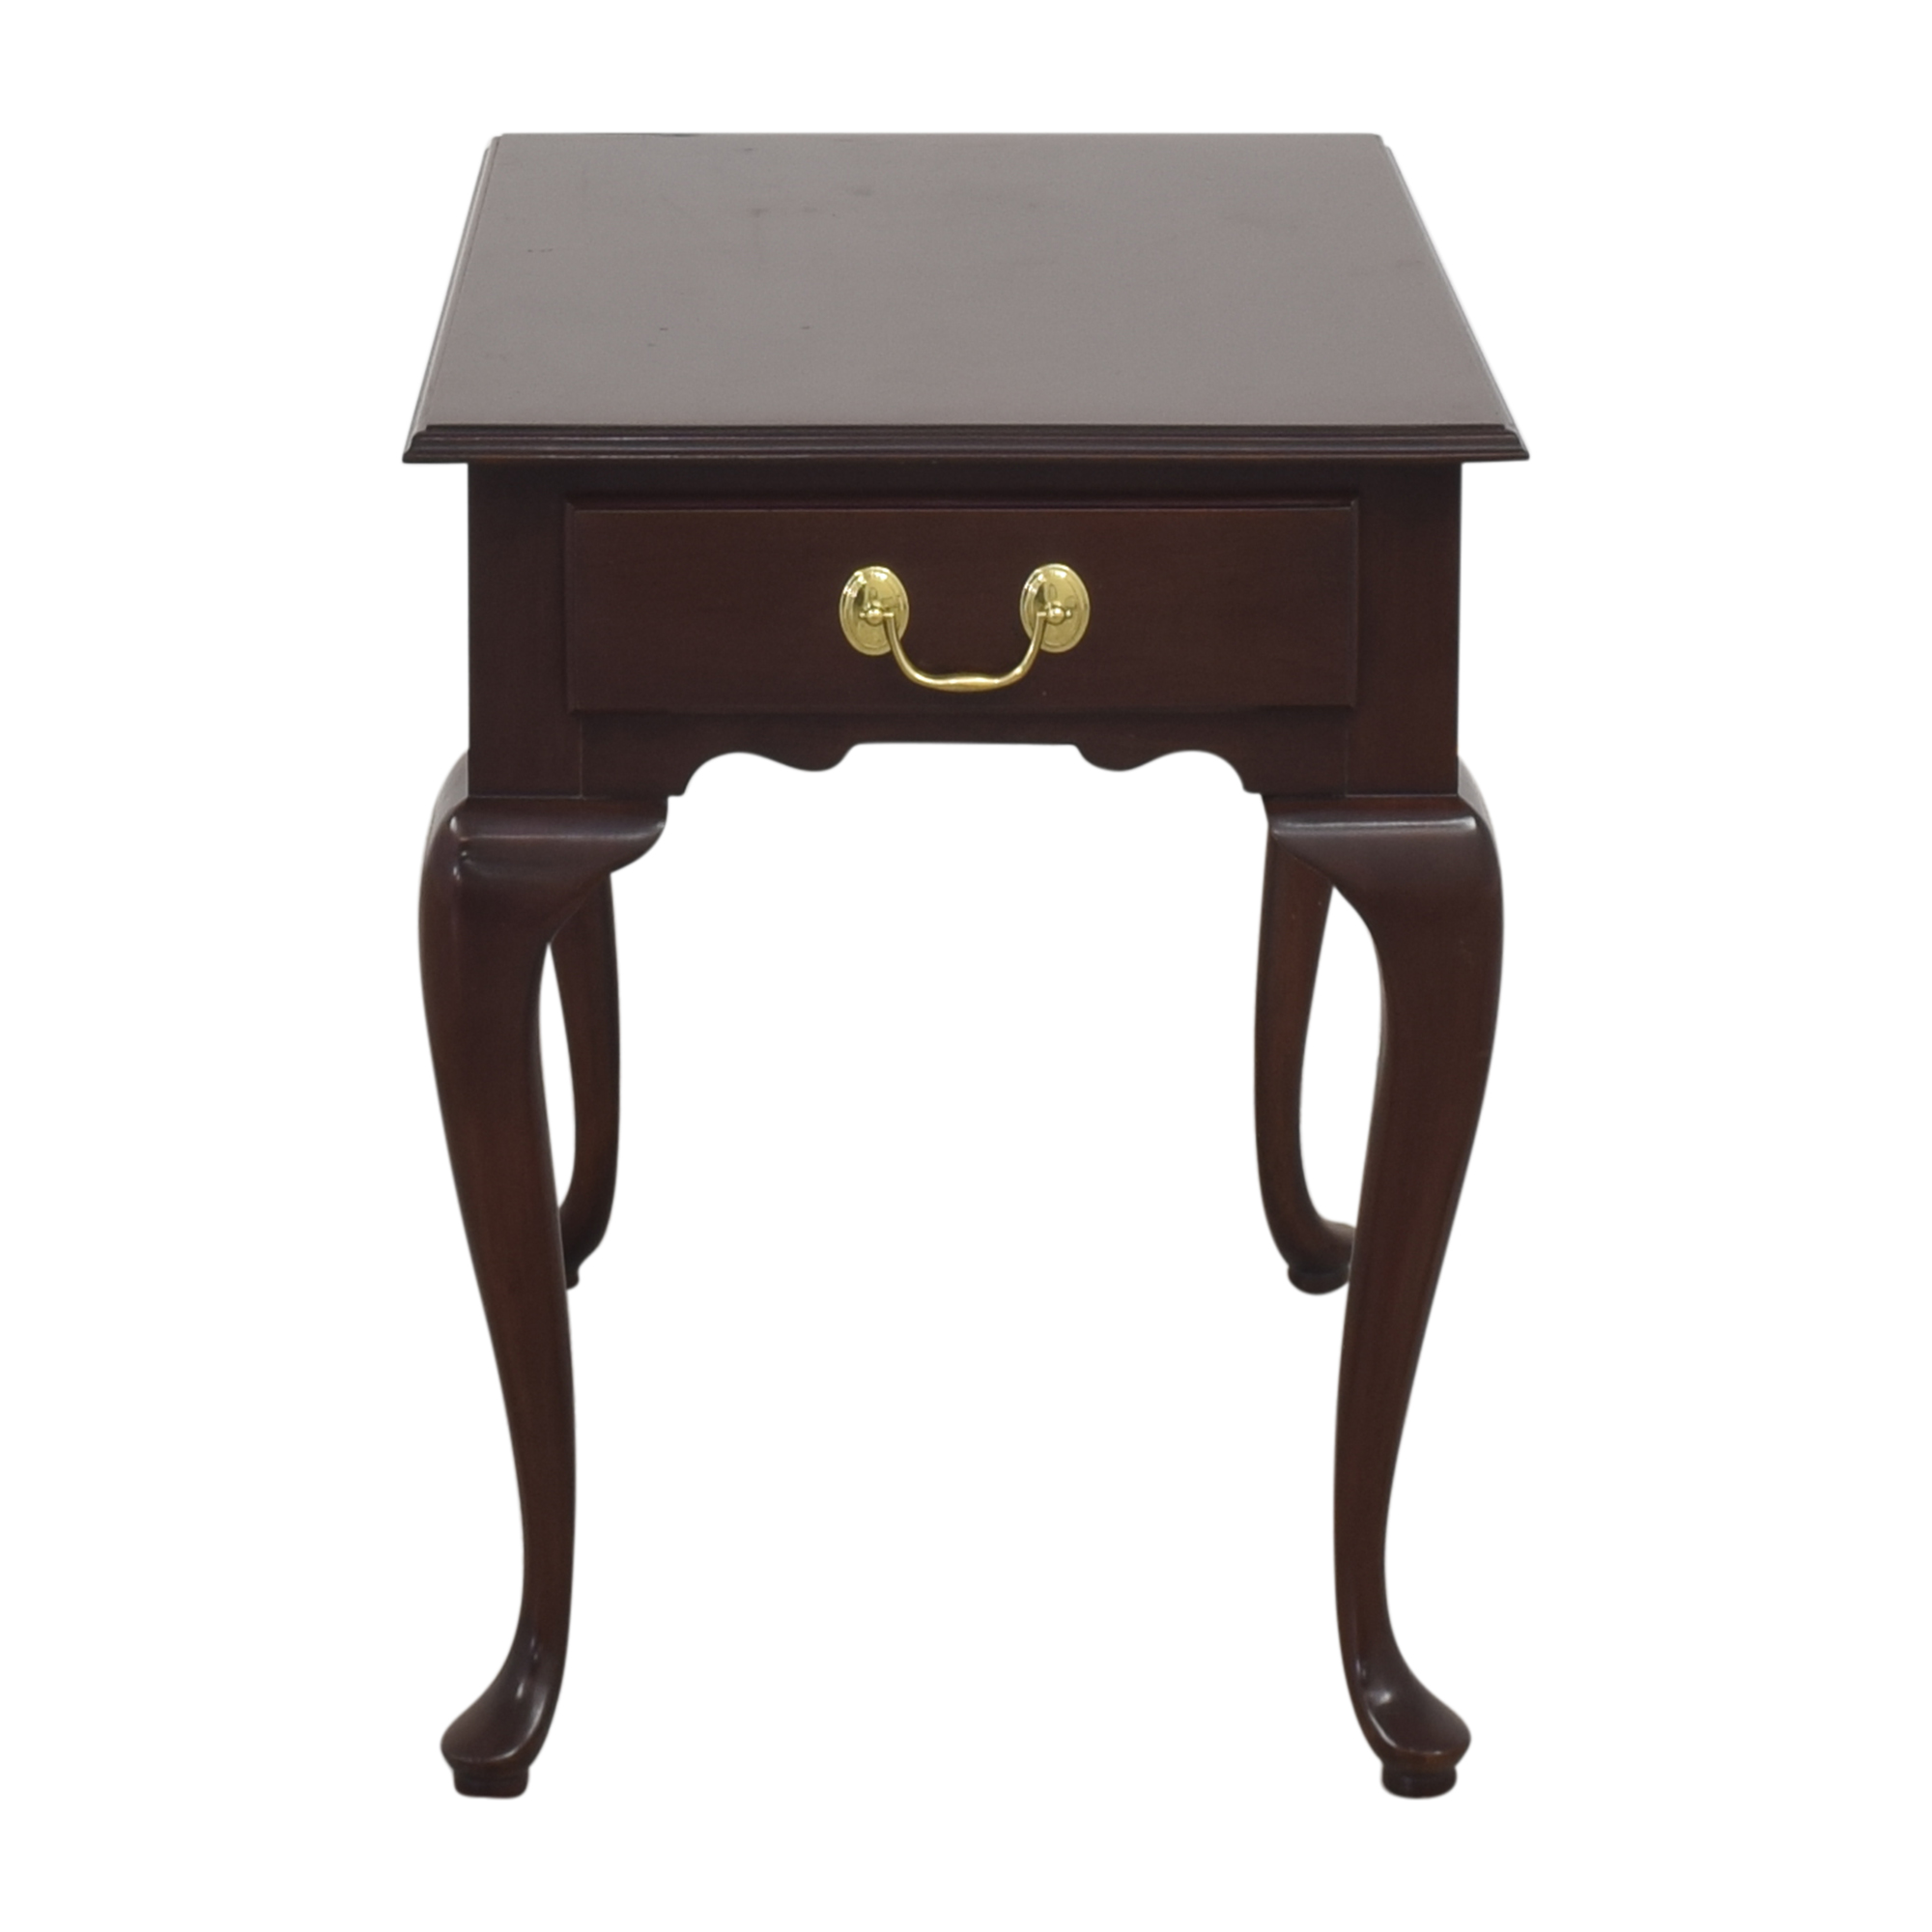 Harden Harden Single Drawer End Table dimensions